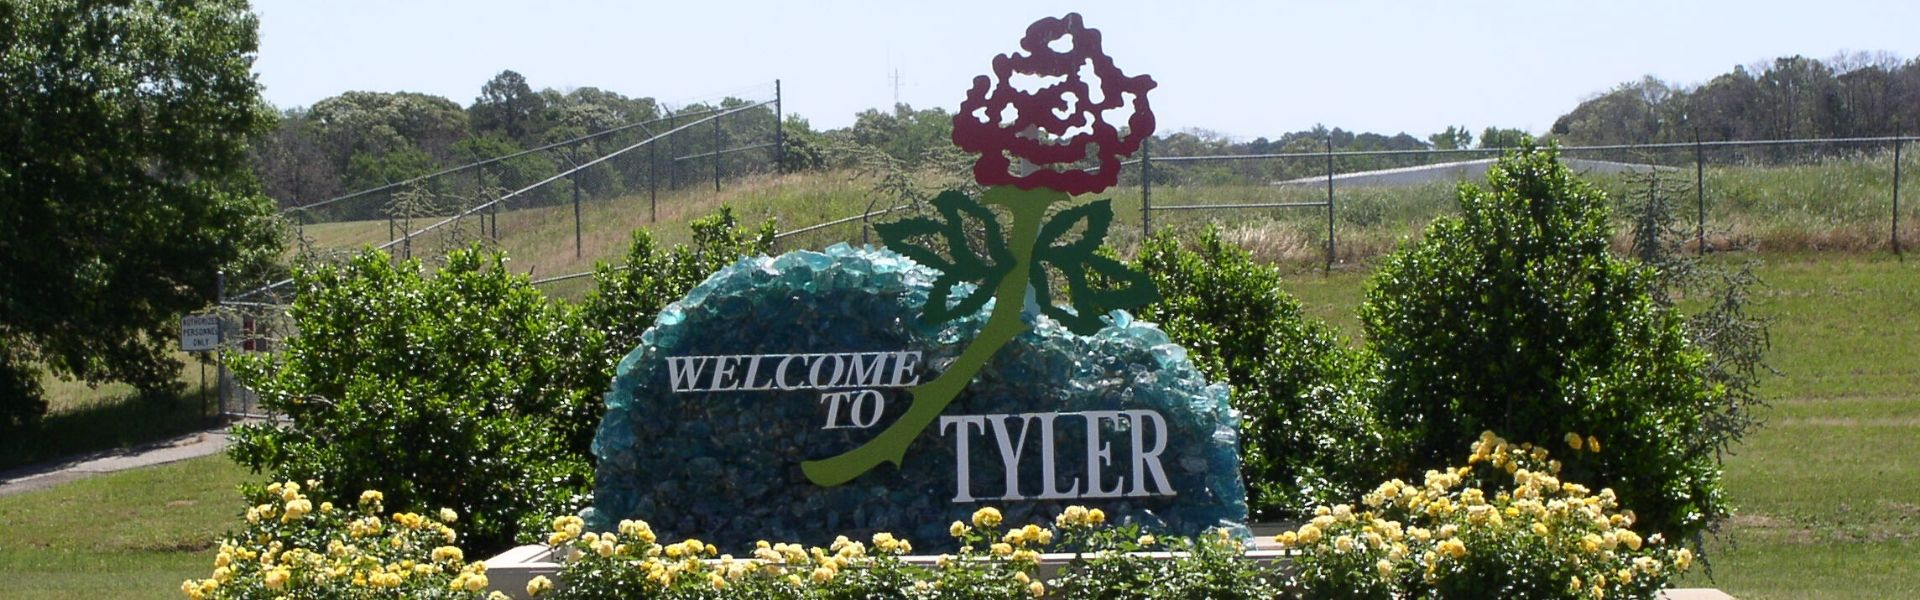 Welcome to Tyler